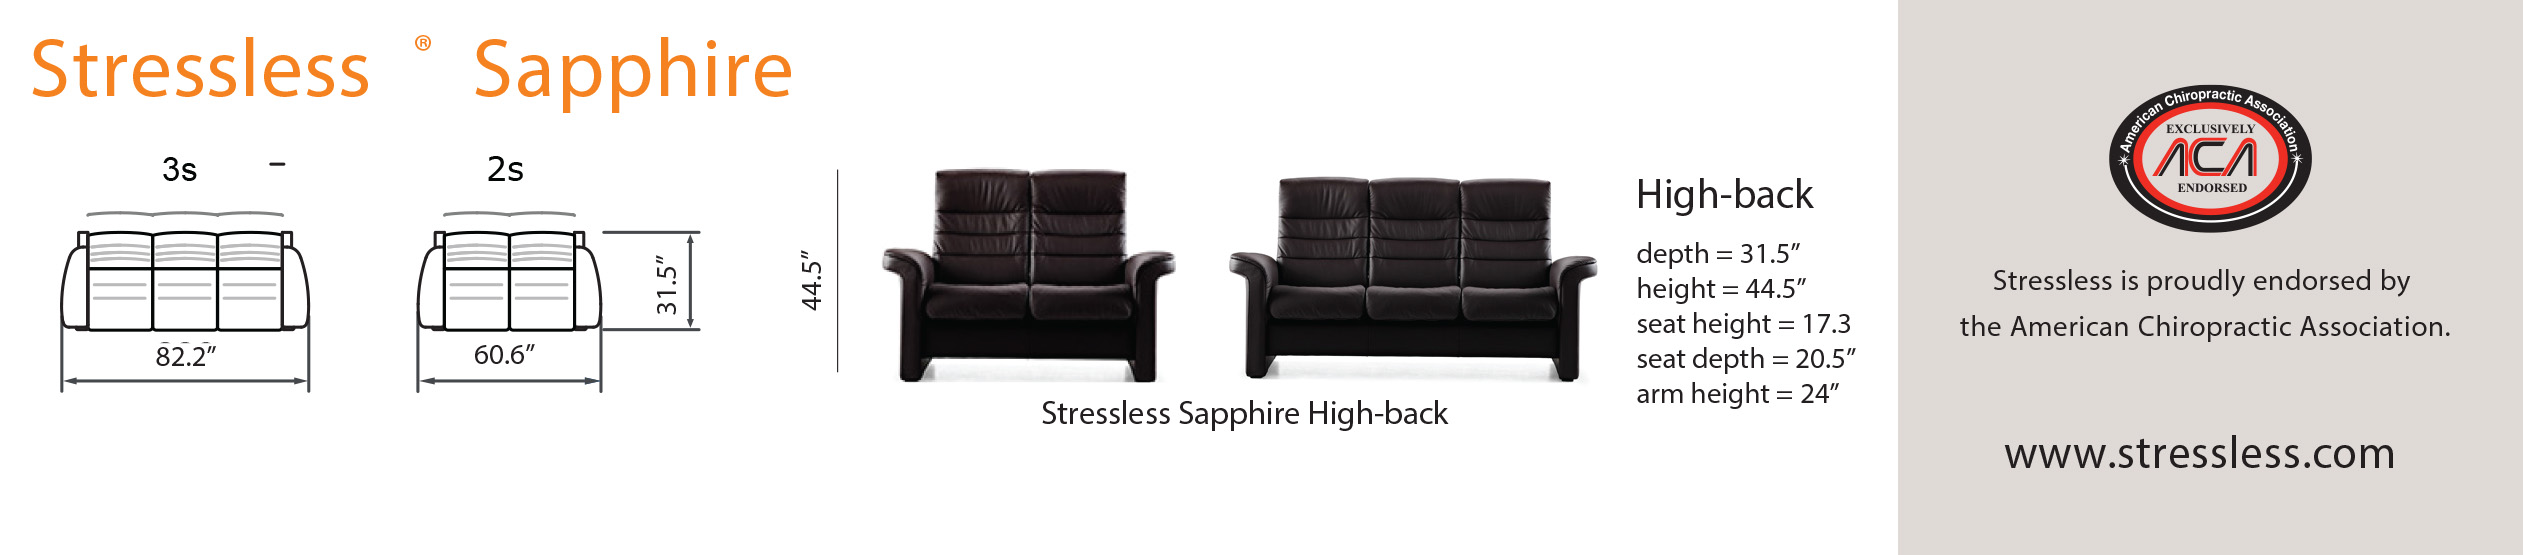 Stressless Sapphire Loveseat Dimensions